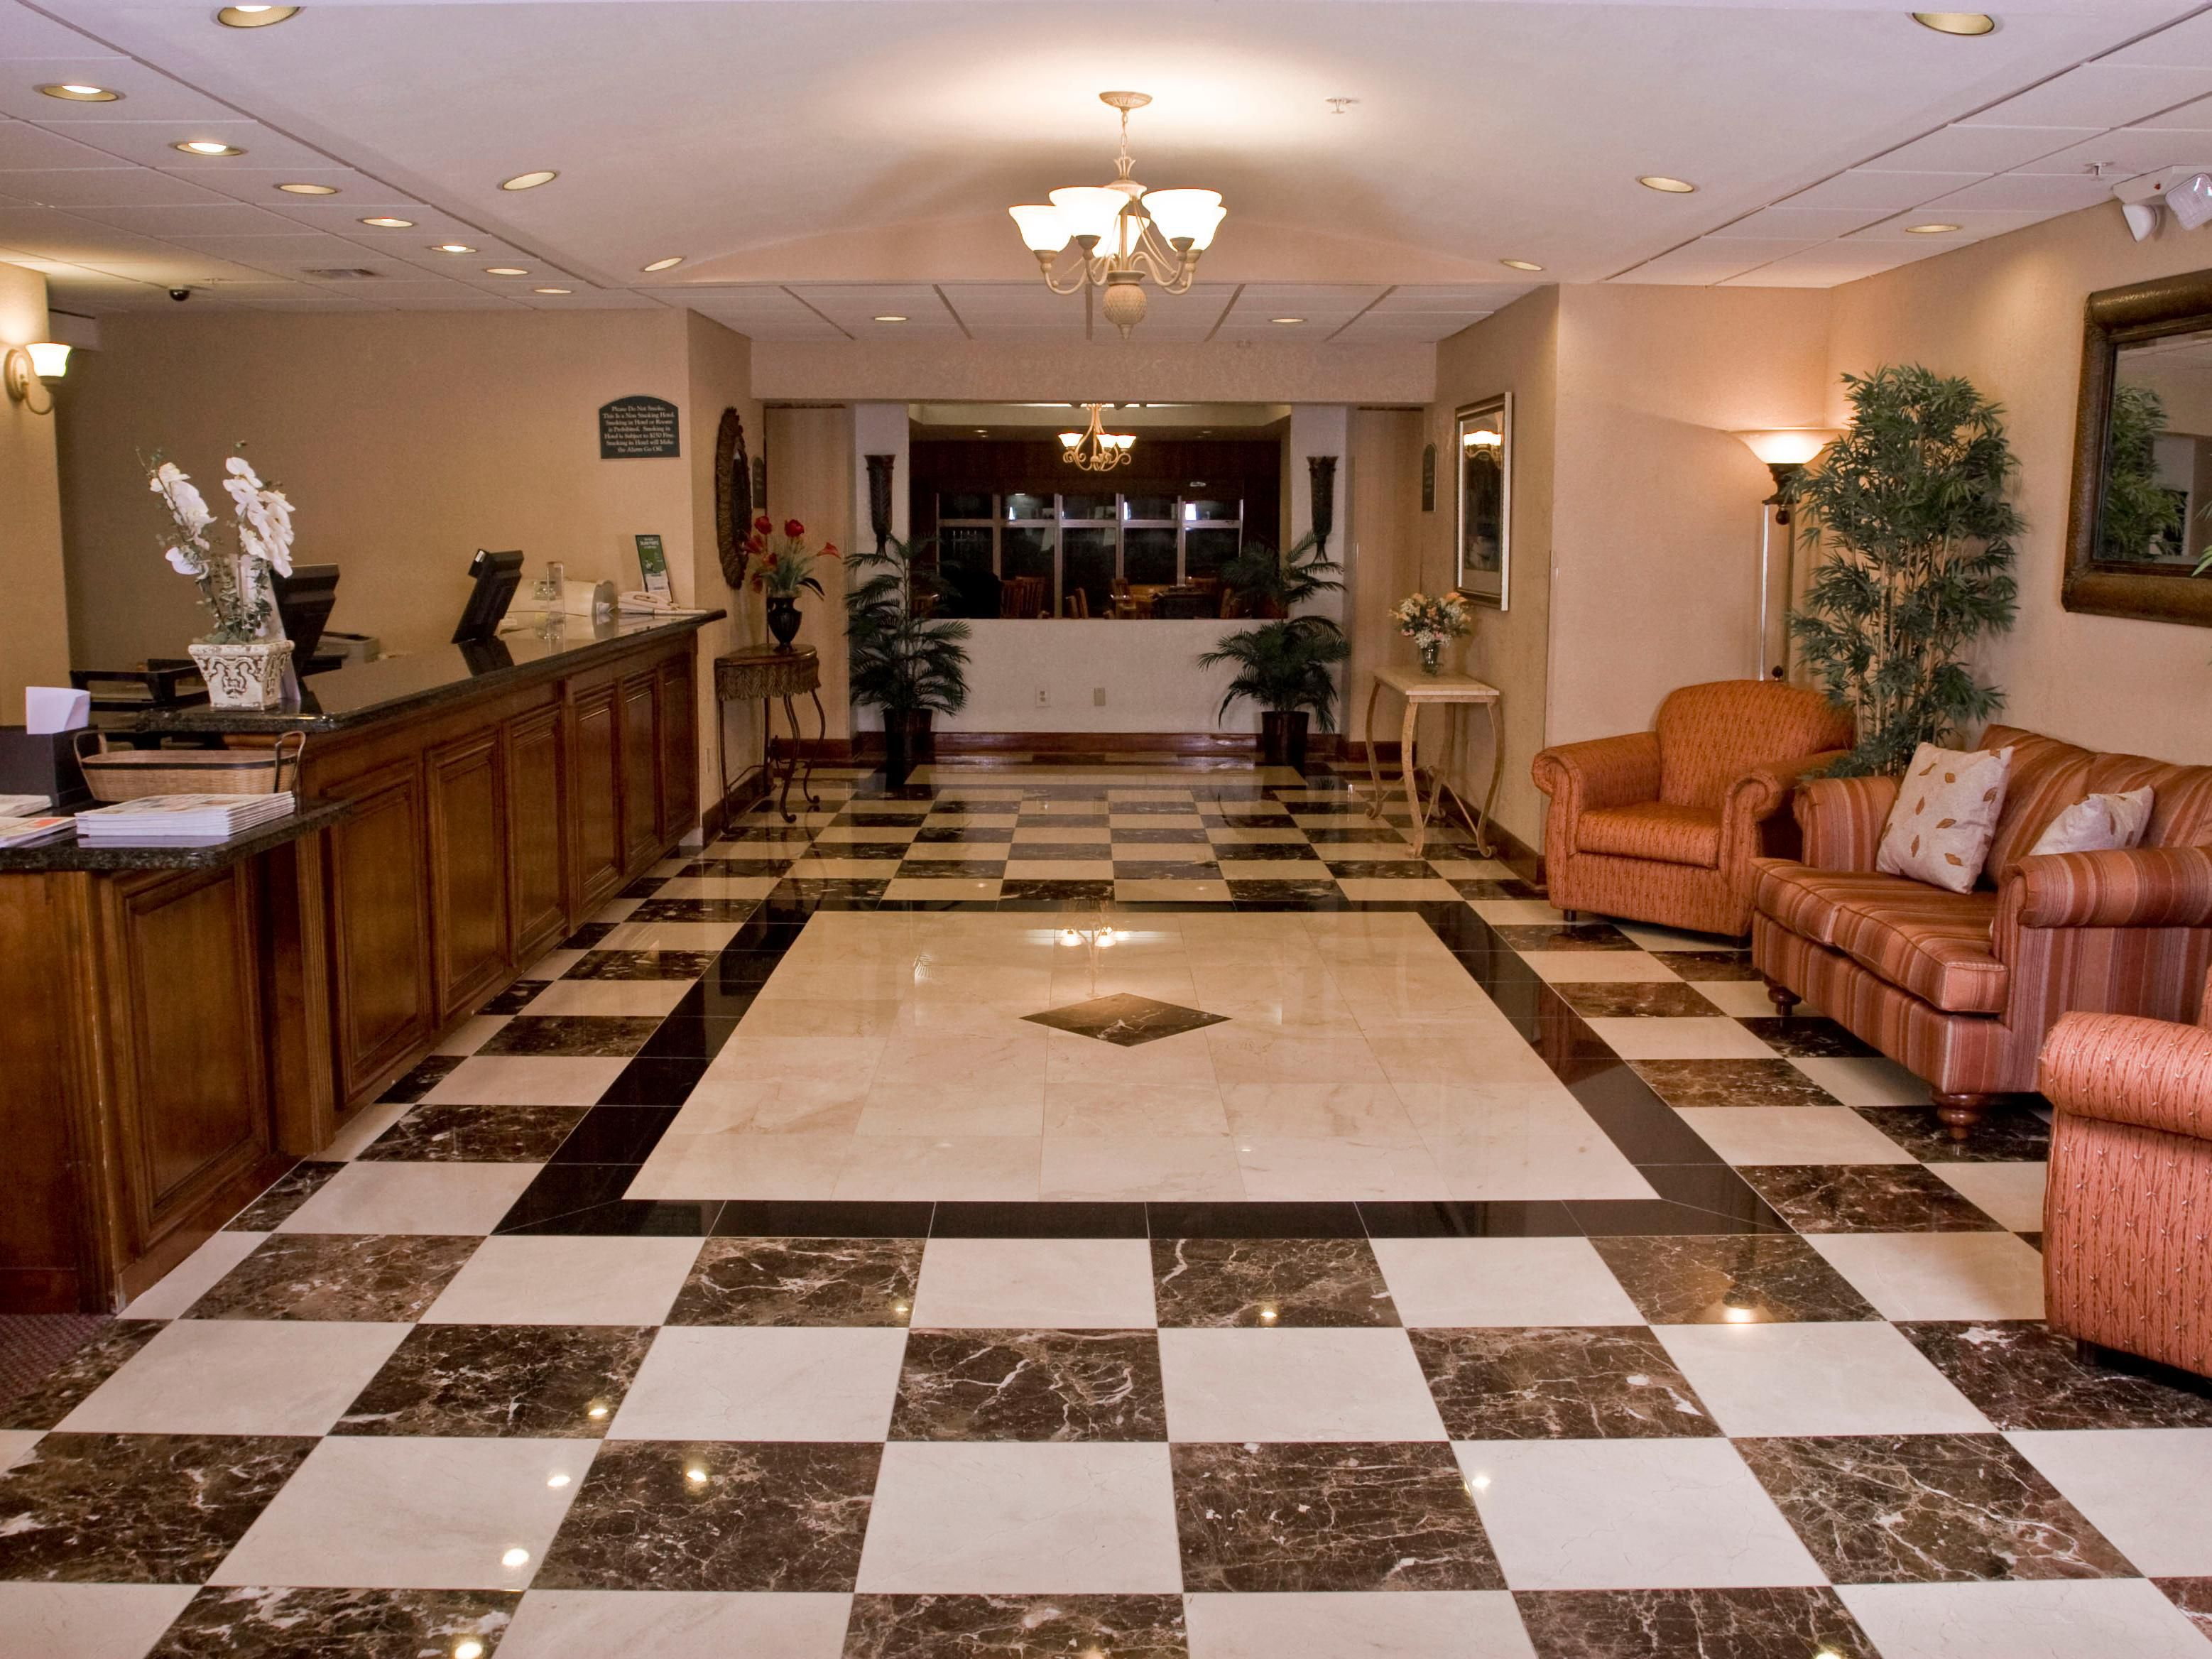 Our Florida hotel is ideal for vacation or business.